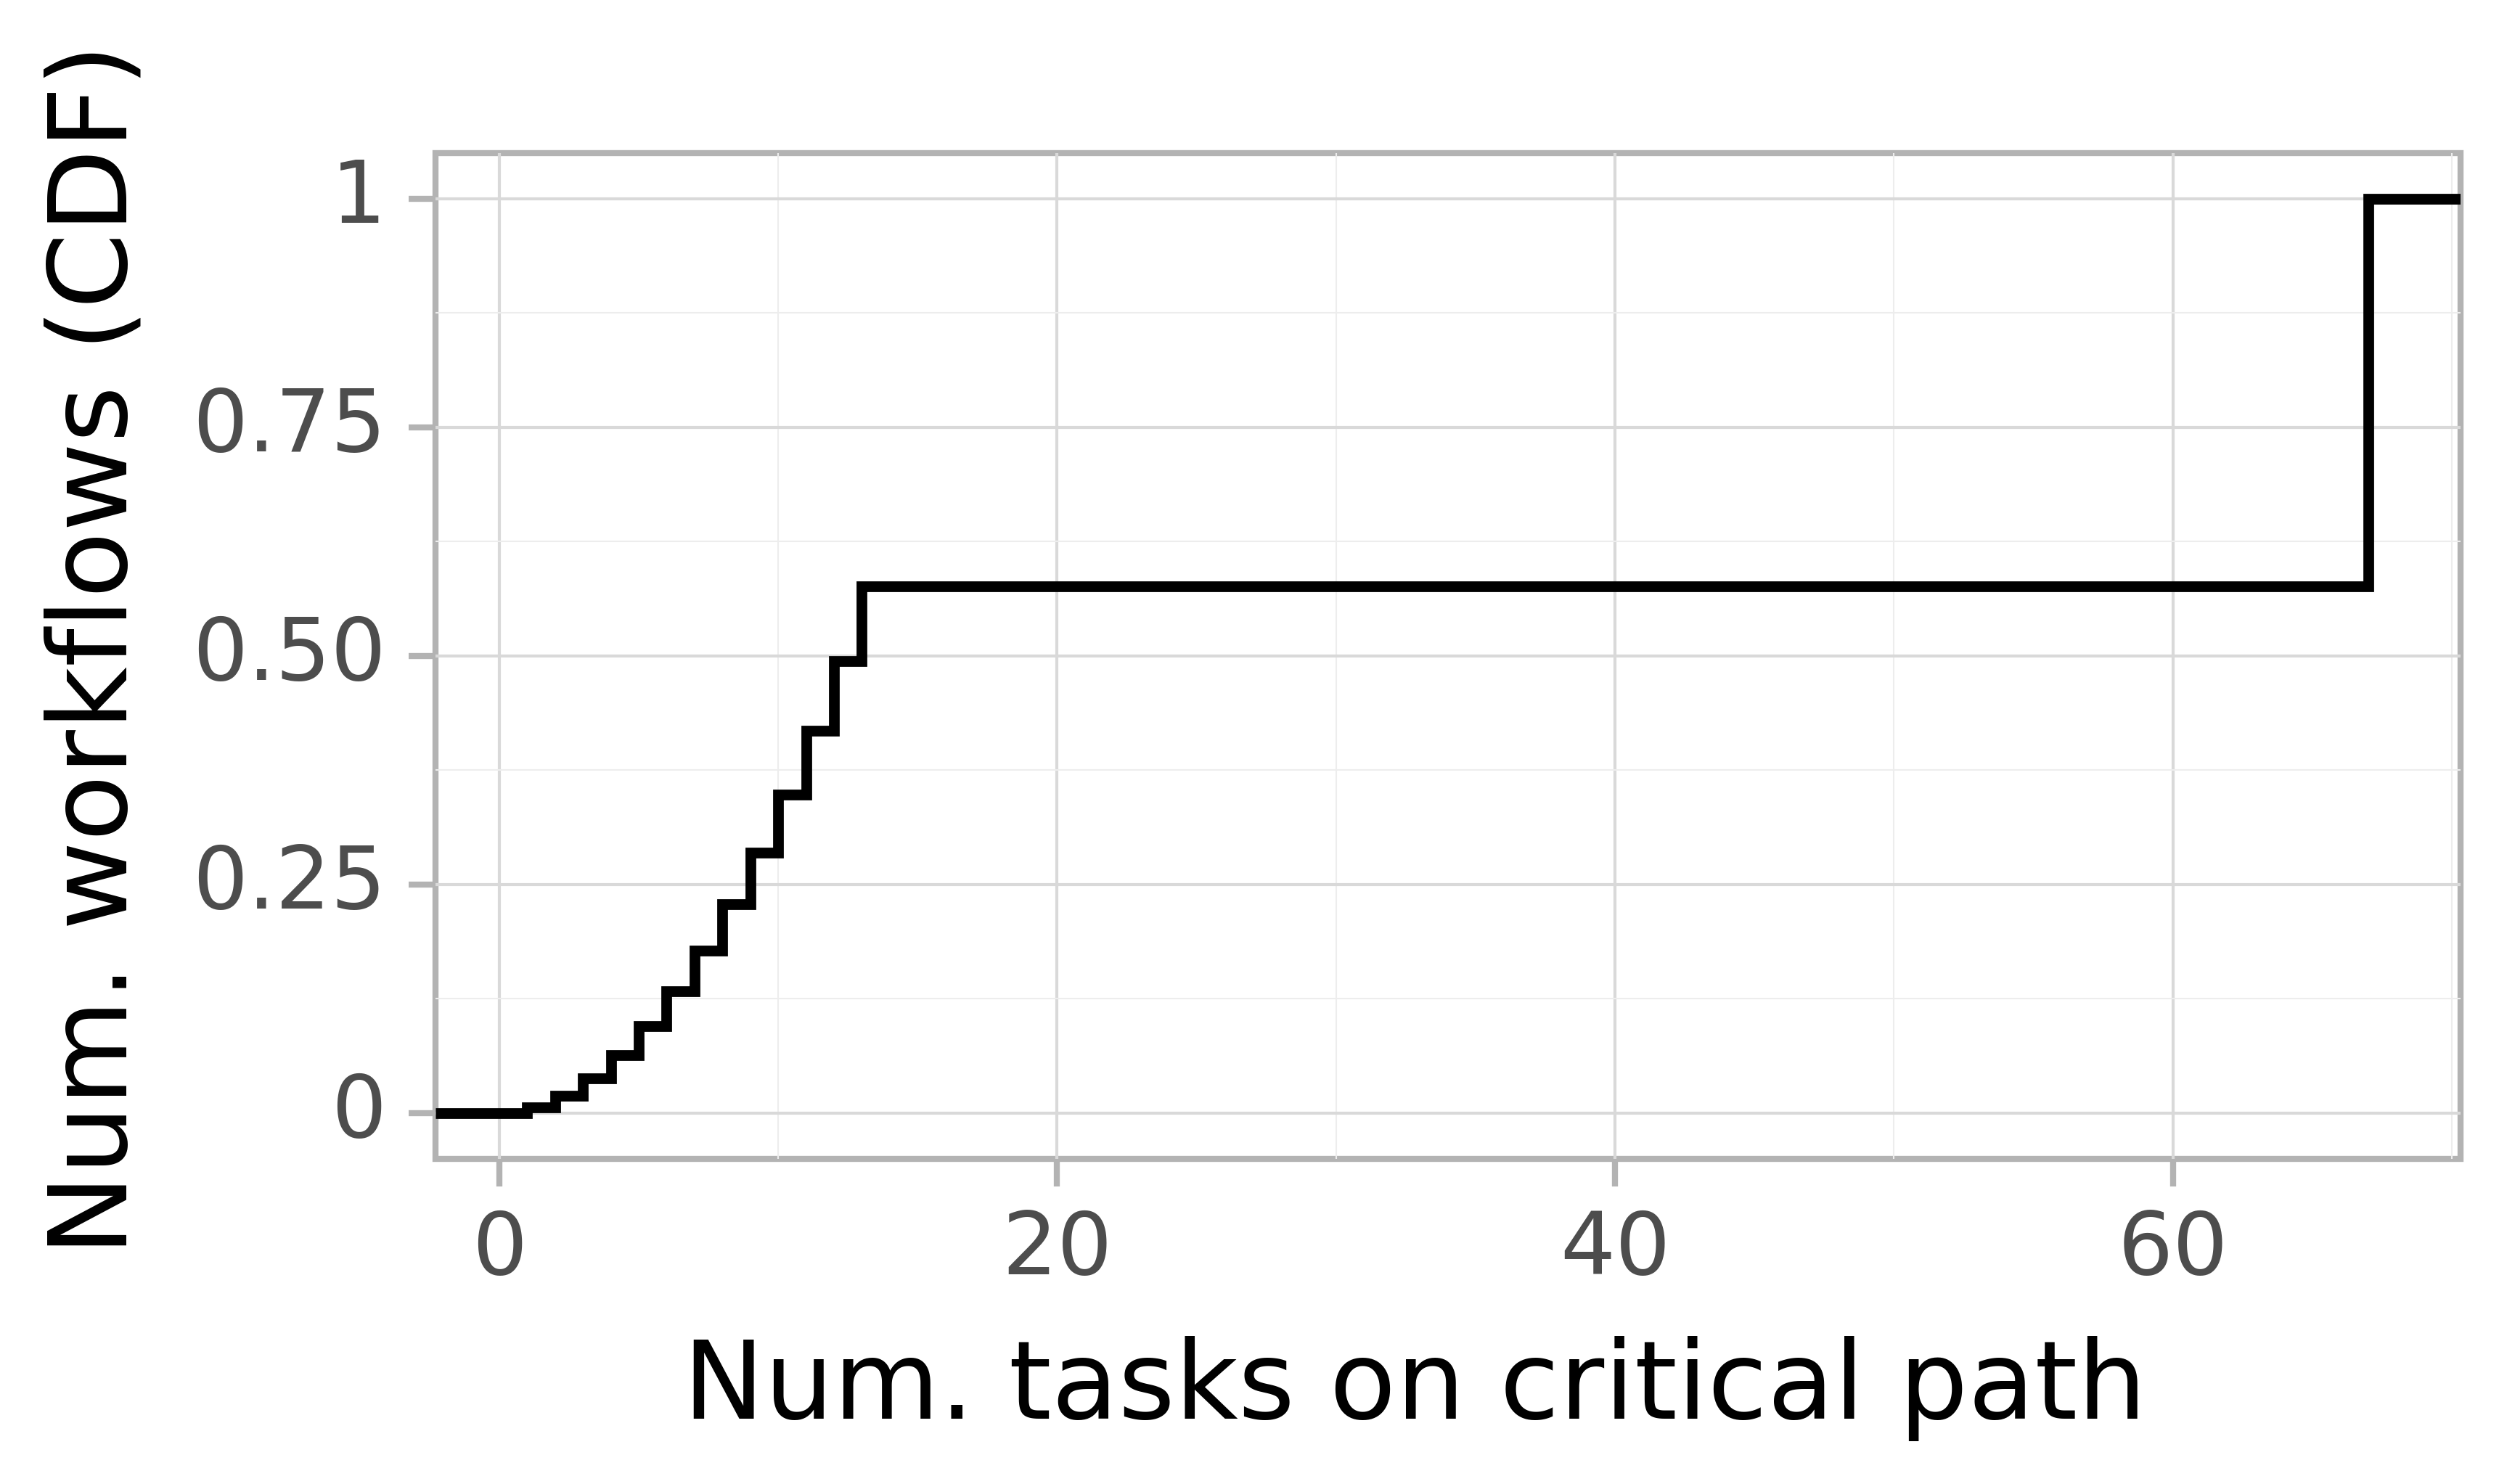 Job critical path task count graph for the alibaba2018 trace.